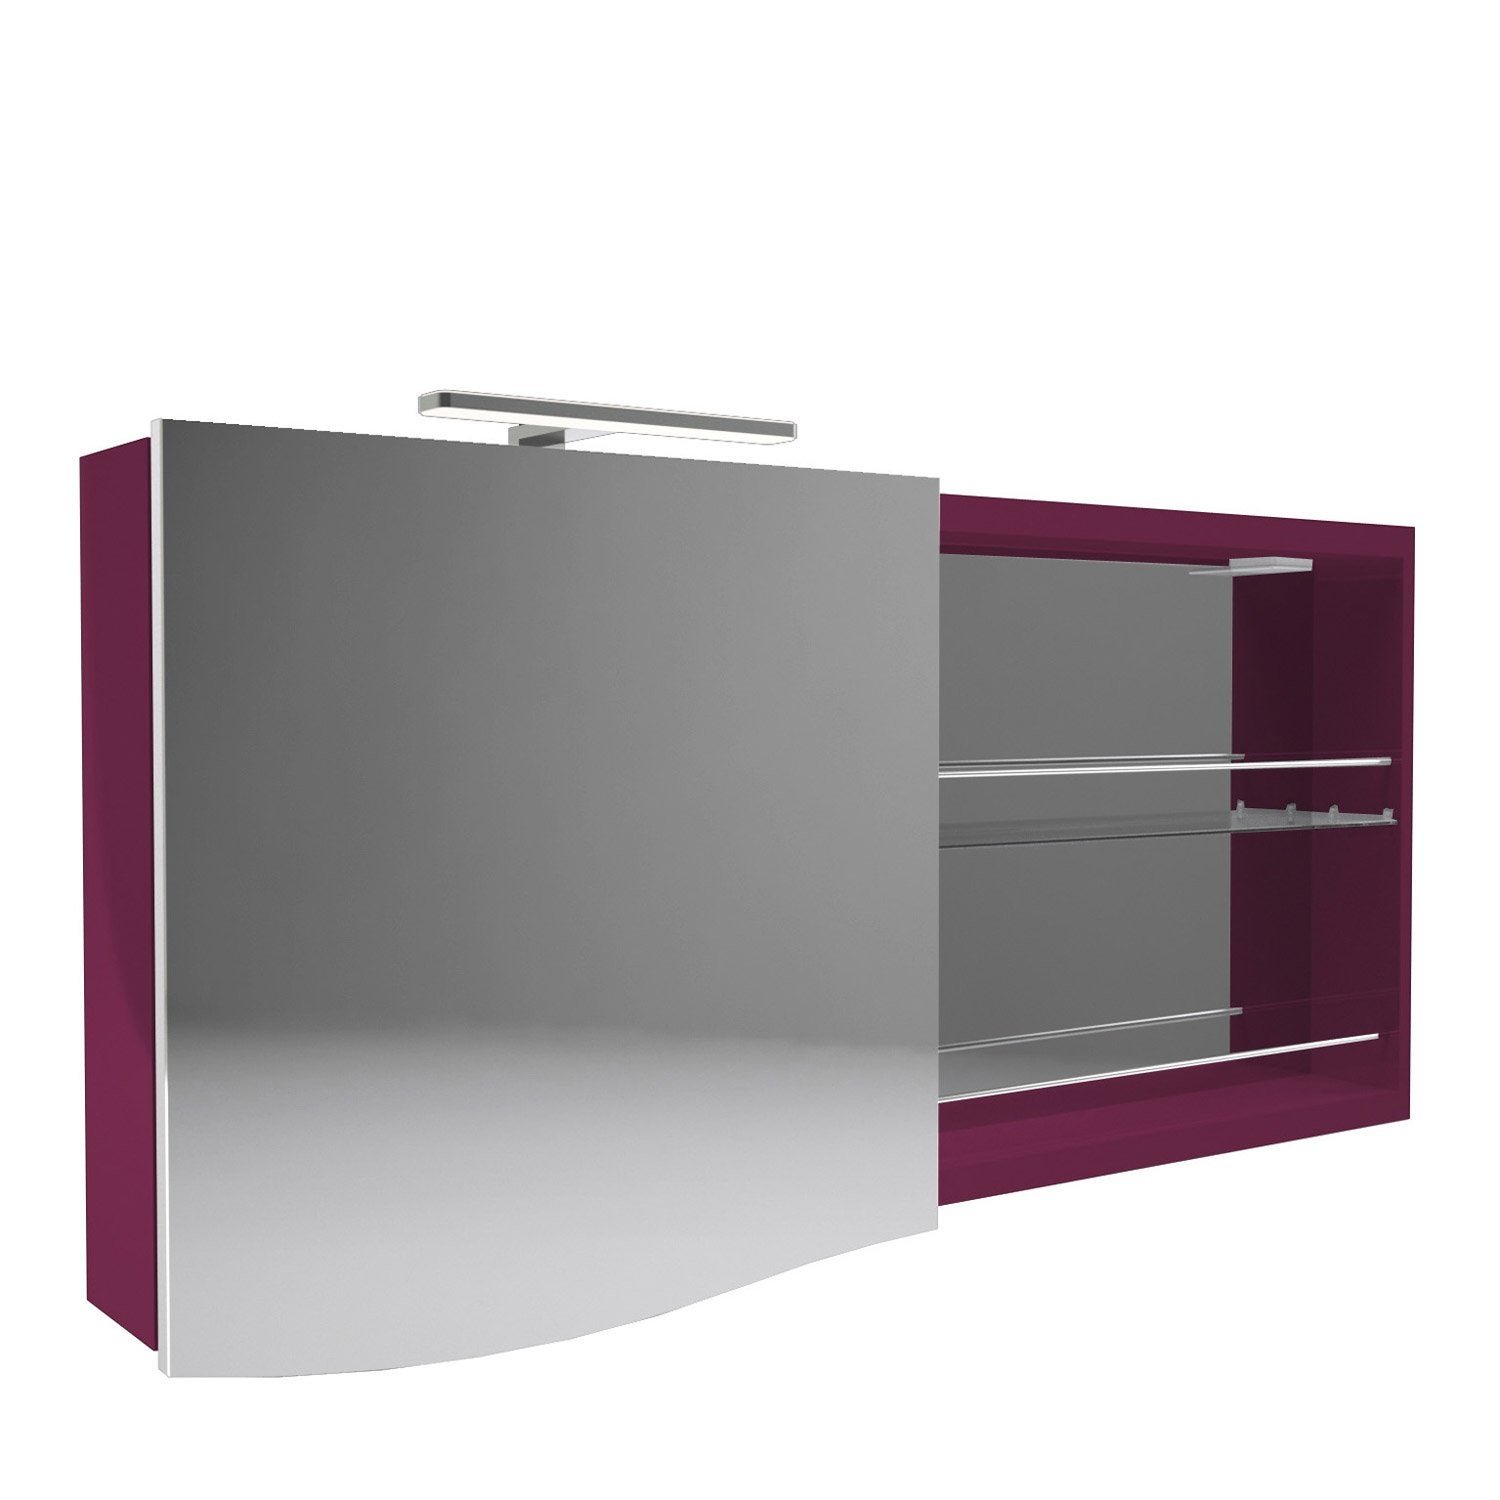 armoire de toilette lumineuse l 130 cm aubergine decotec elegance leroy merlin. Black Bedroom Furniture Sets. Home Design Ideas